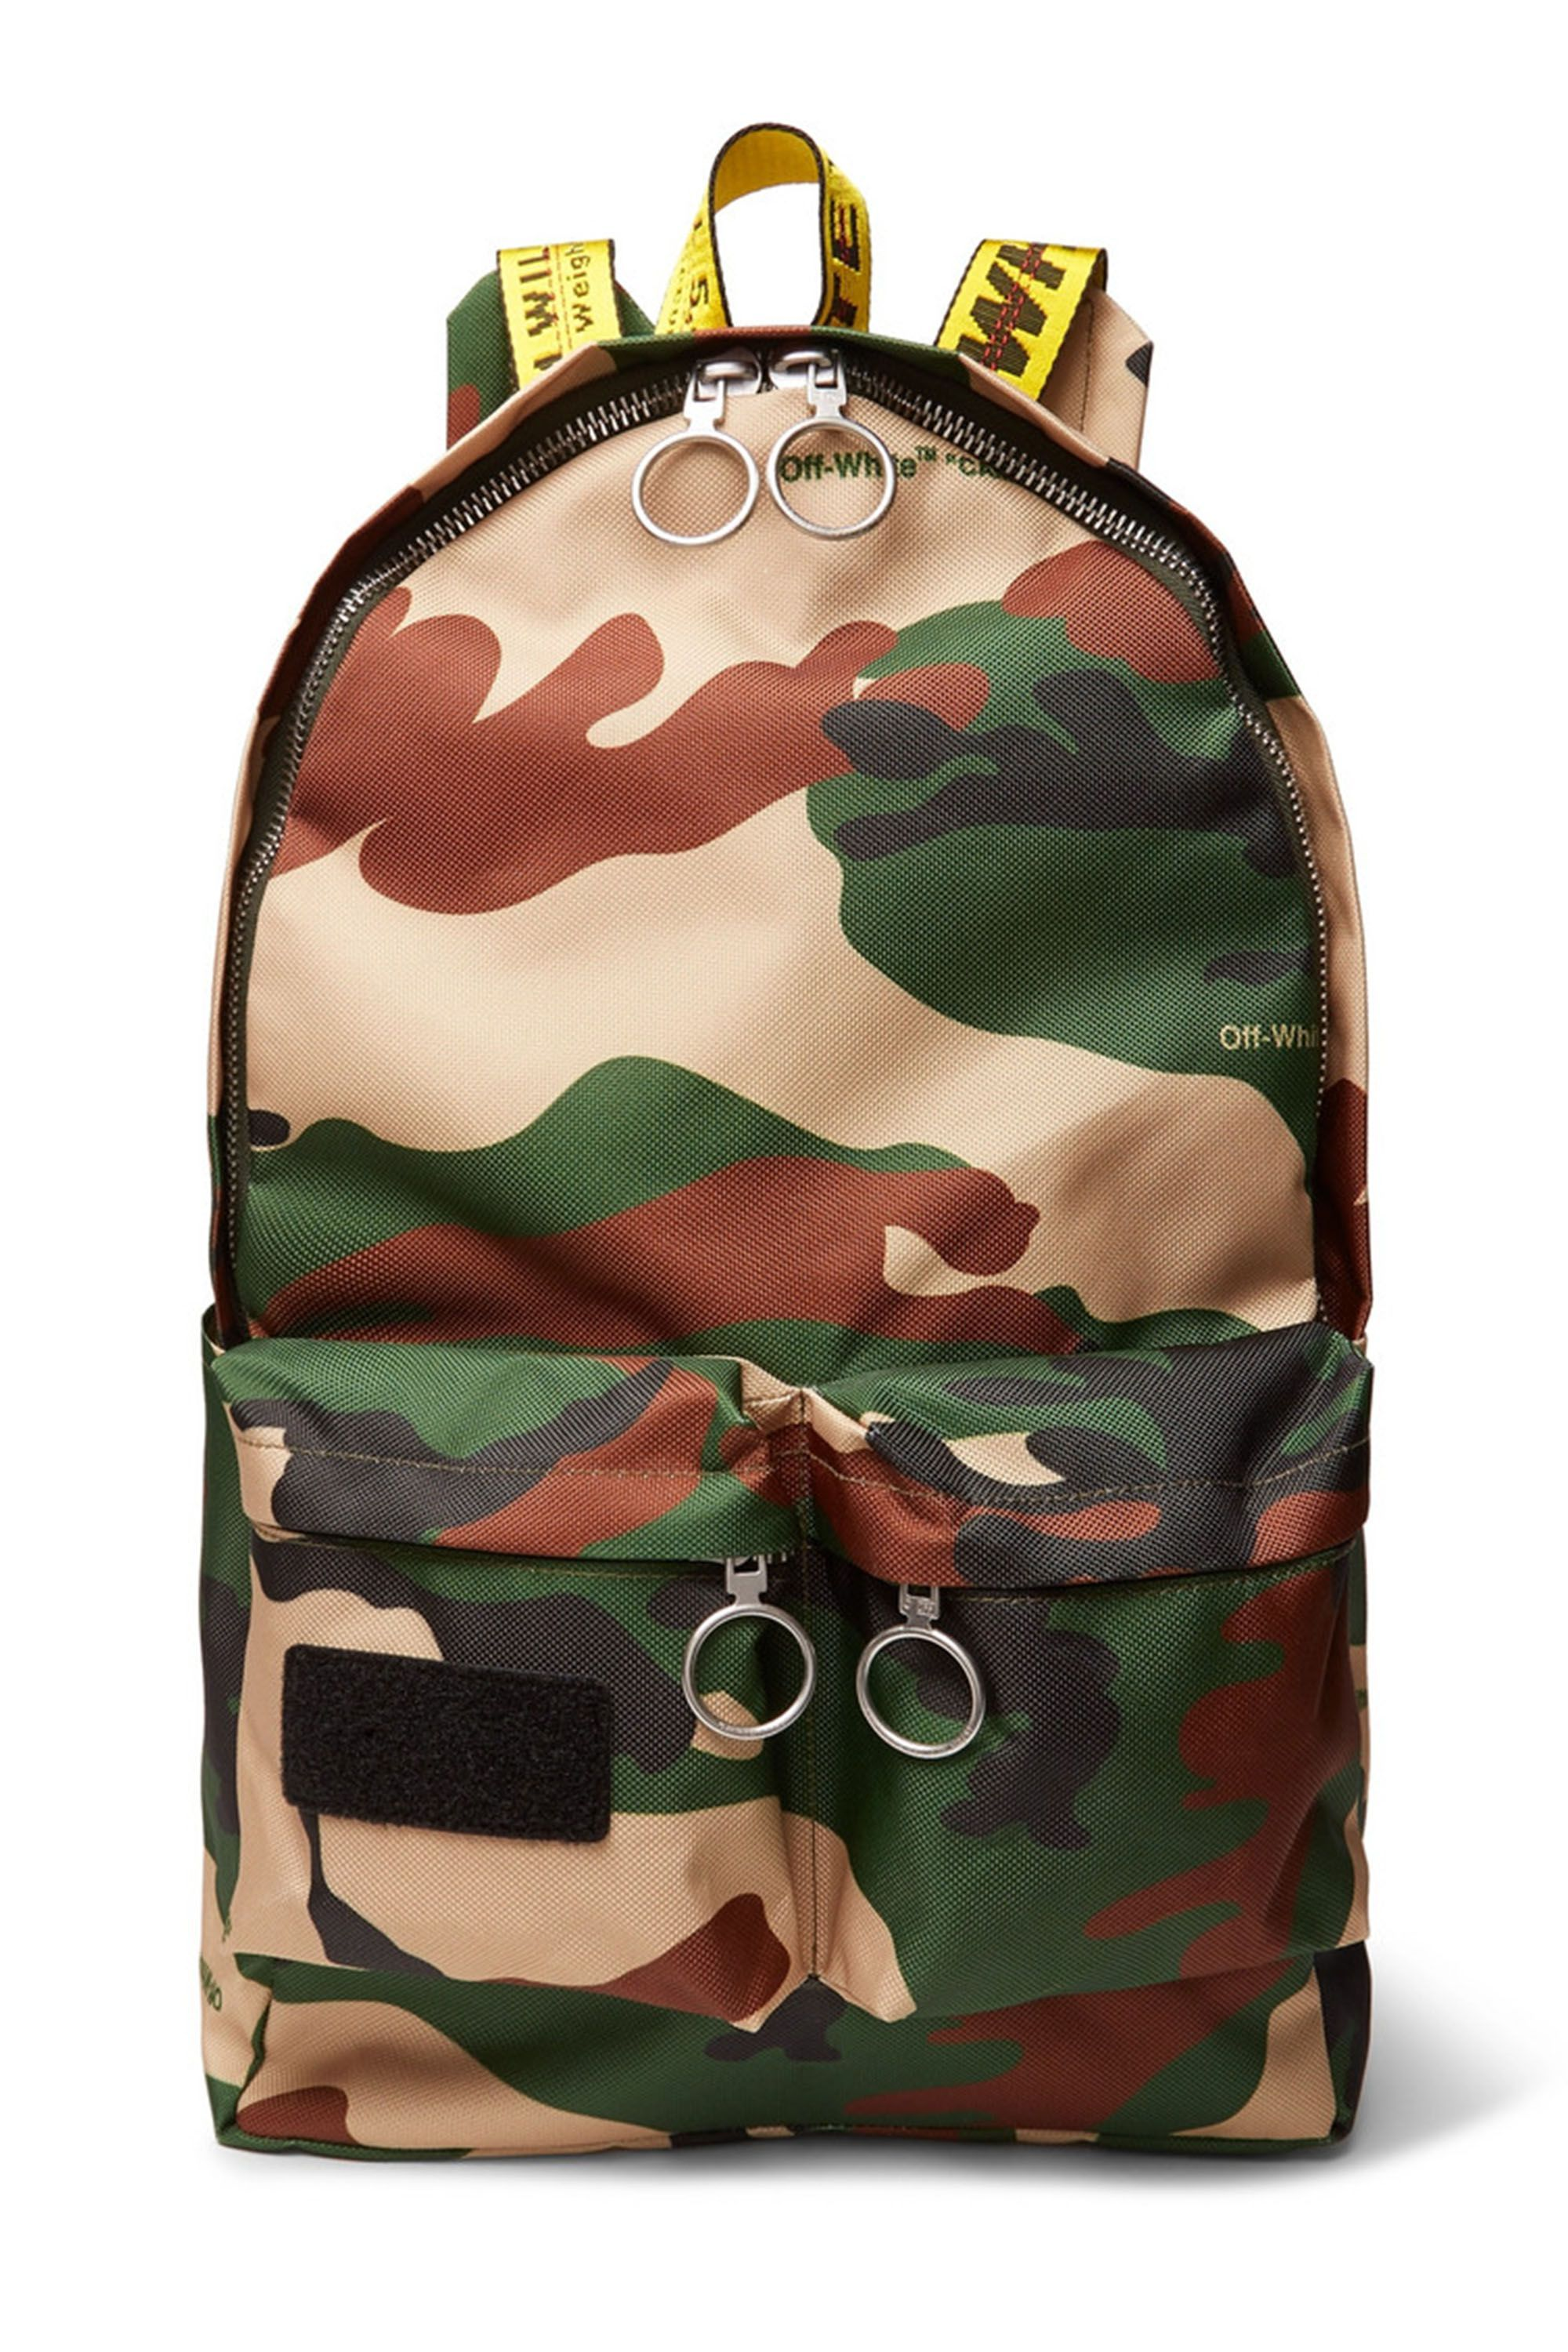 4d7171443a Best Backpacks for Women 2018 - 15 Backpacks Made for Adults